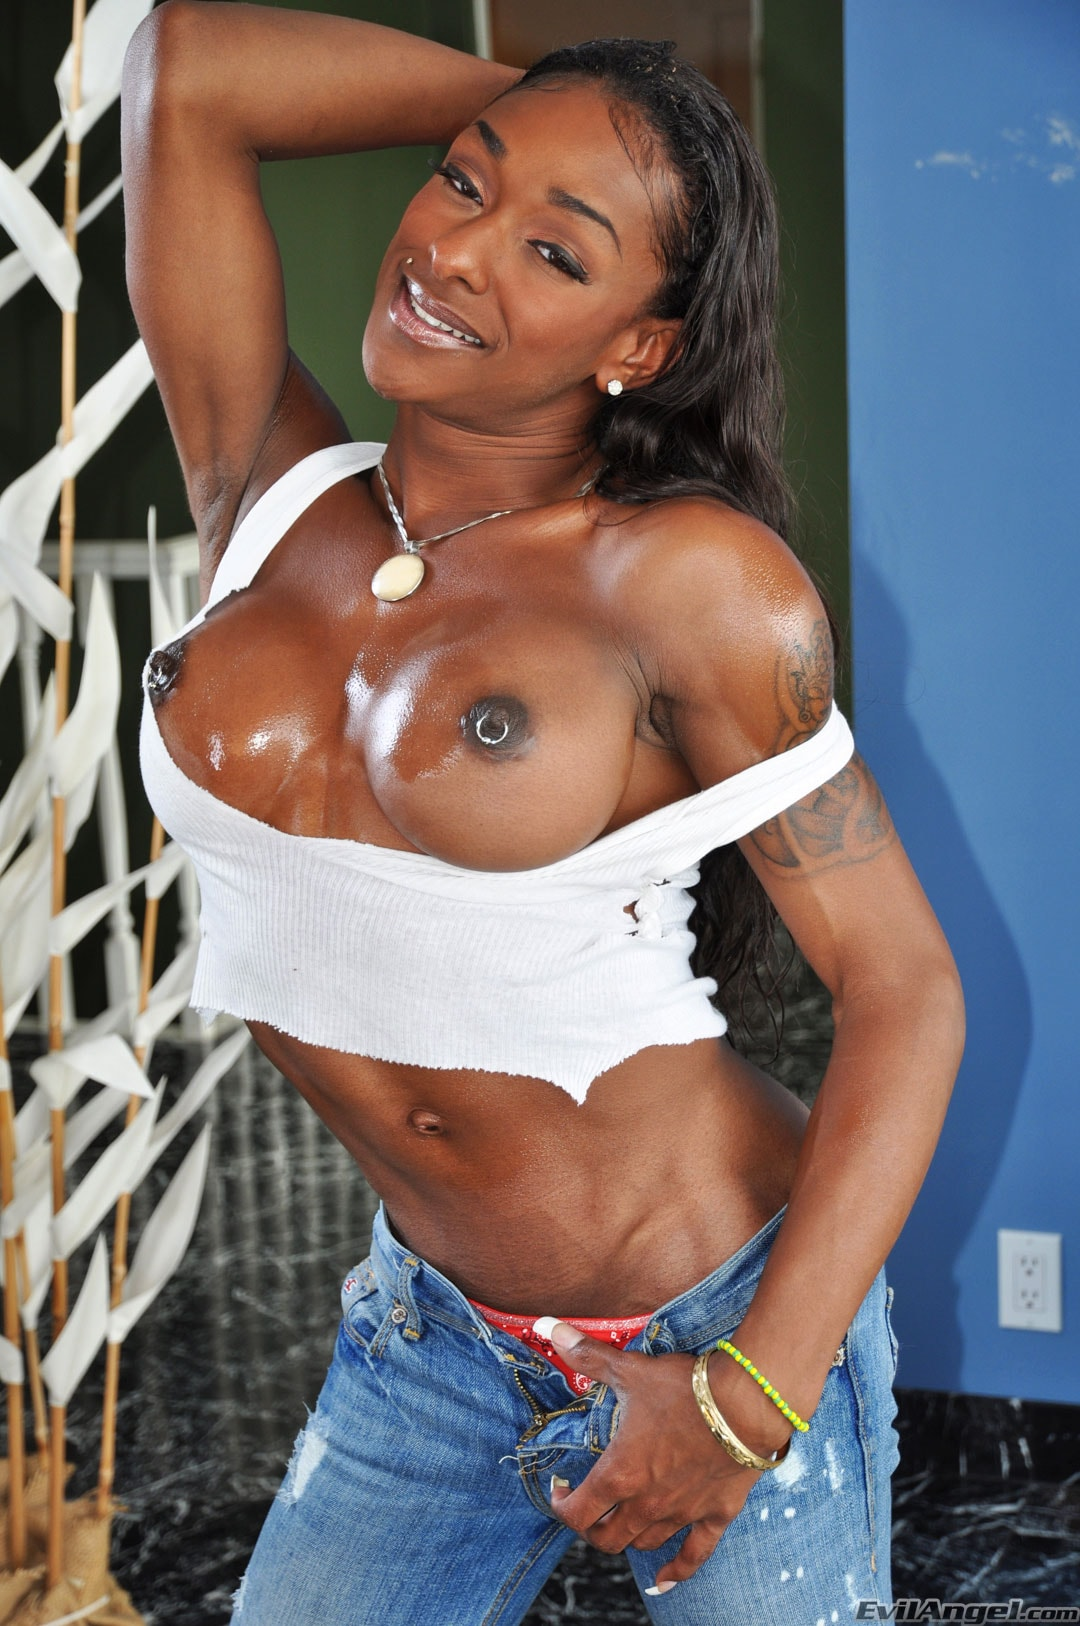 I Love Black Shemales 'Black Shemale Idol - The Auditions' starring Natalia Coxxx (Photo 16)